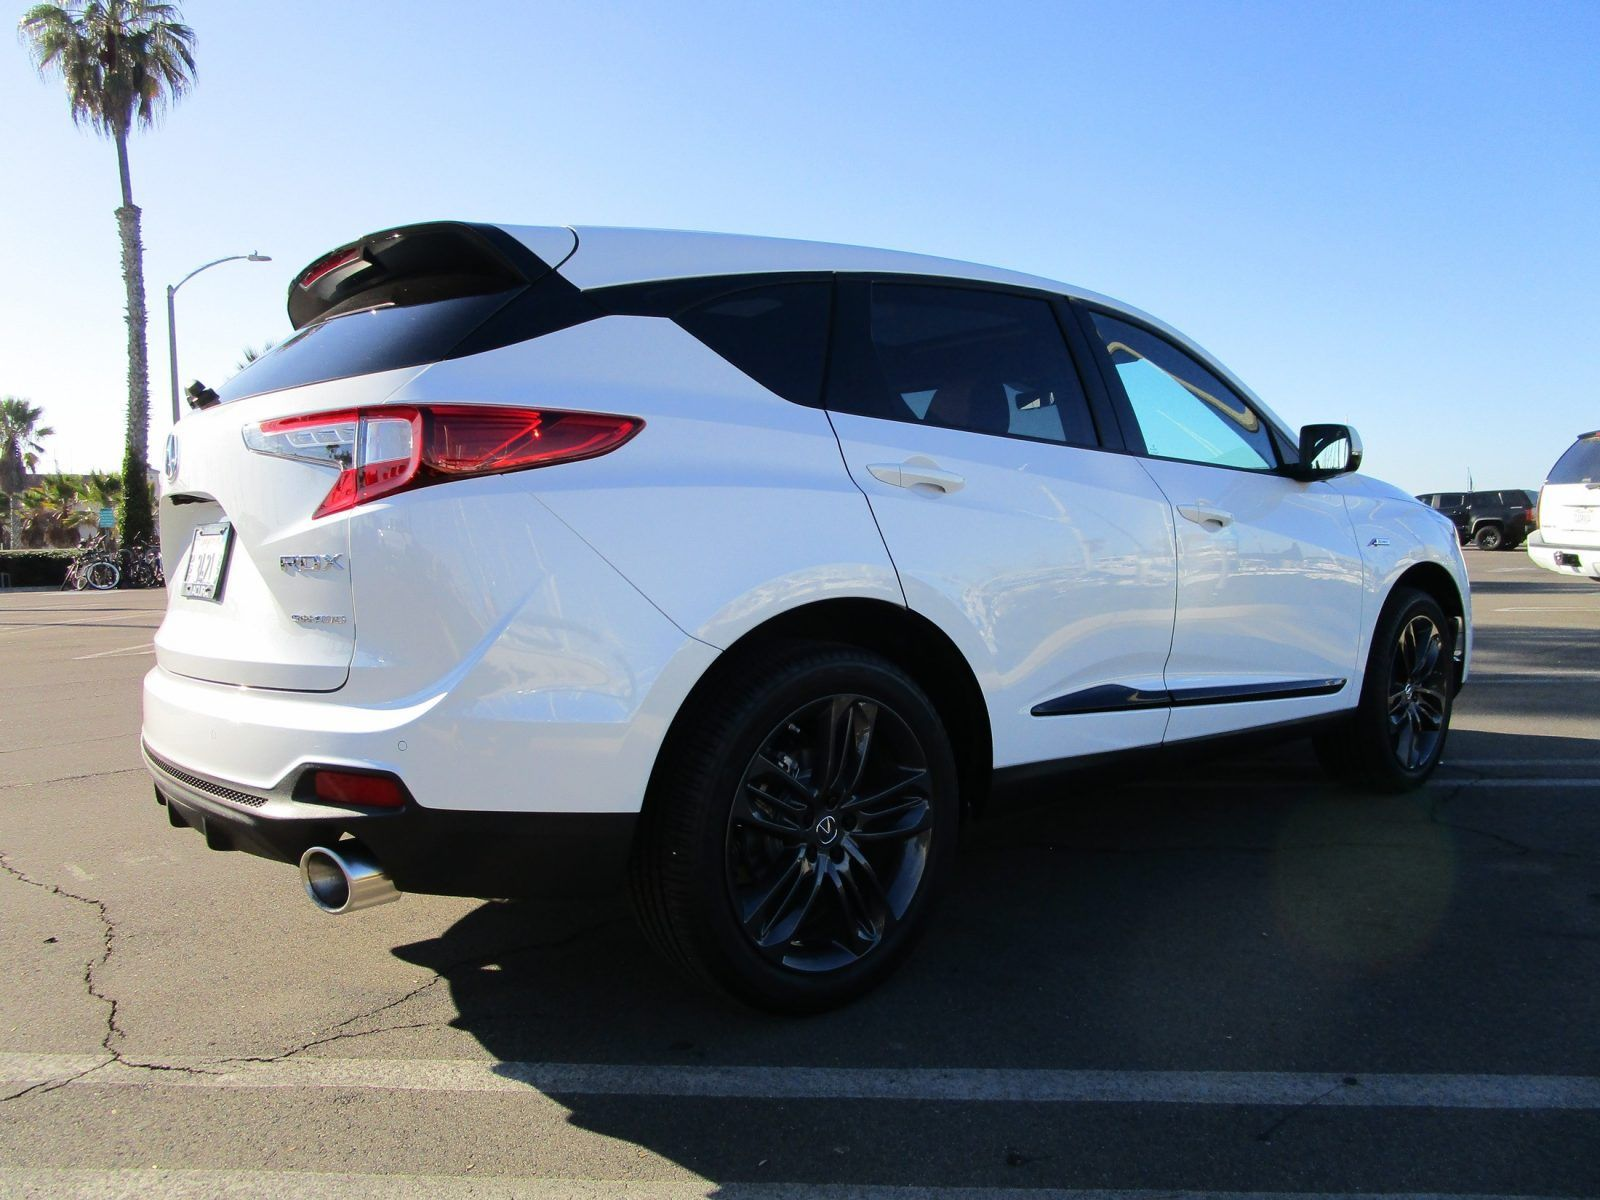 2020 Acura RDX SHAWD ASPEC Review by Ben Lewis » CAR